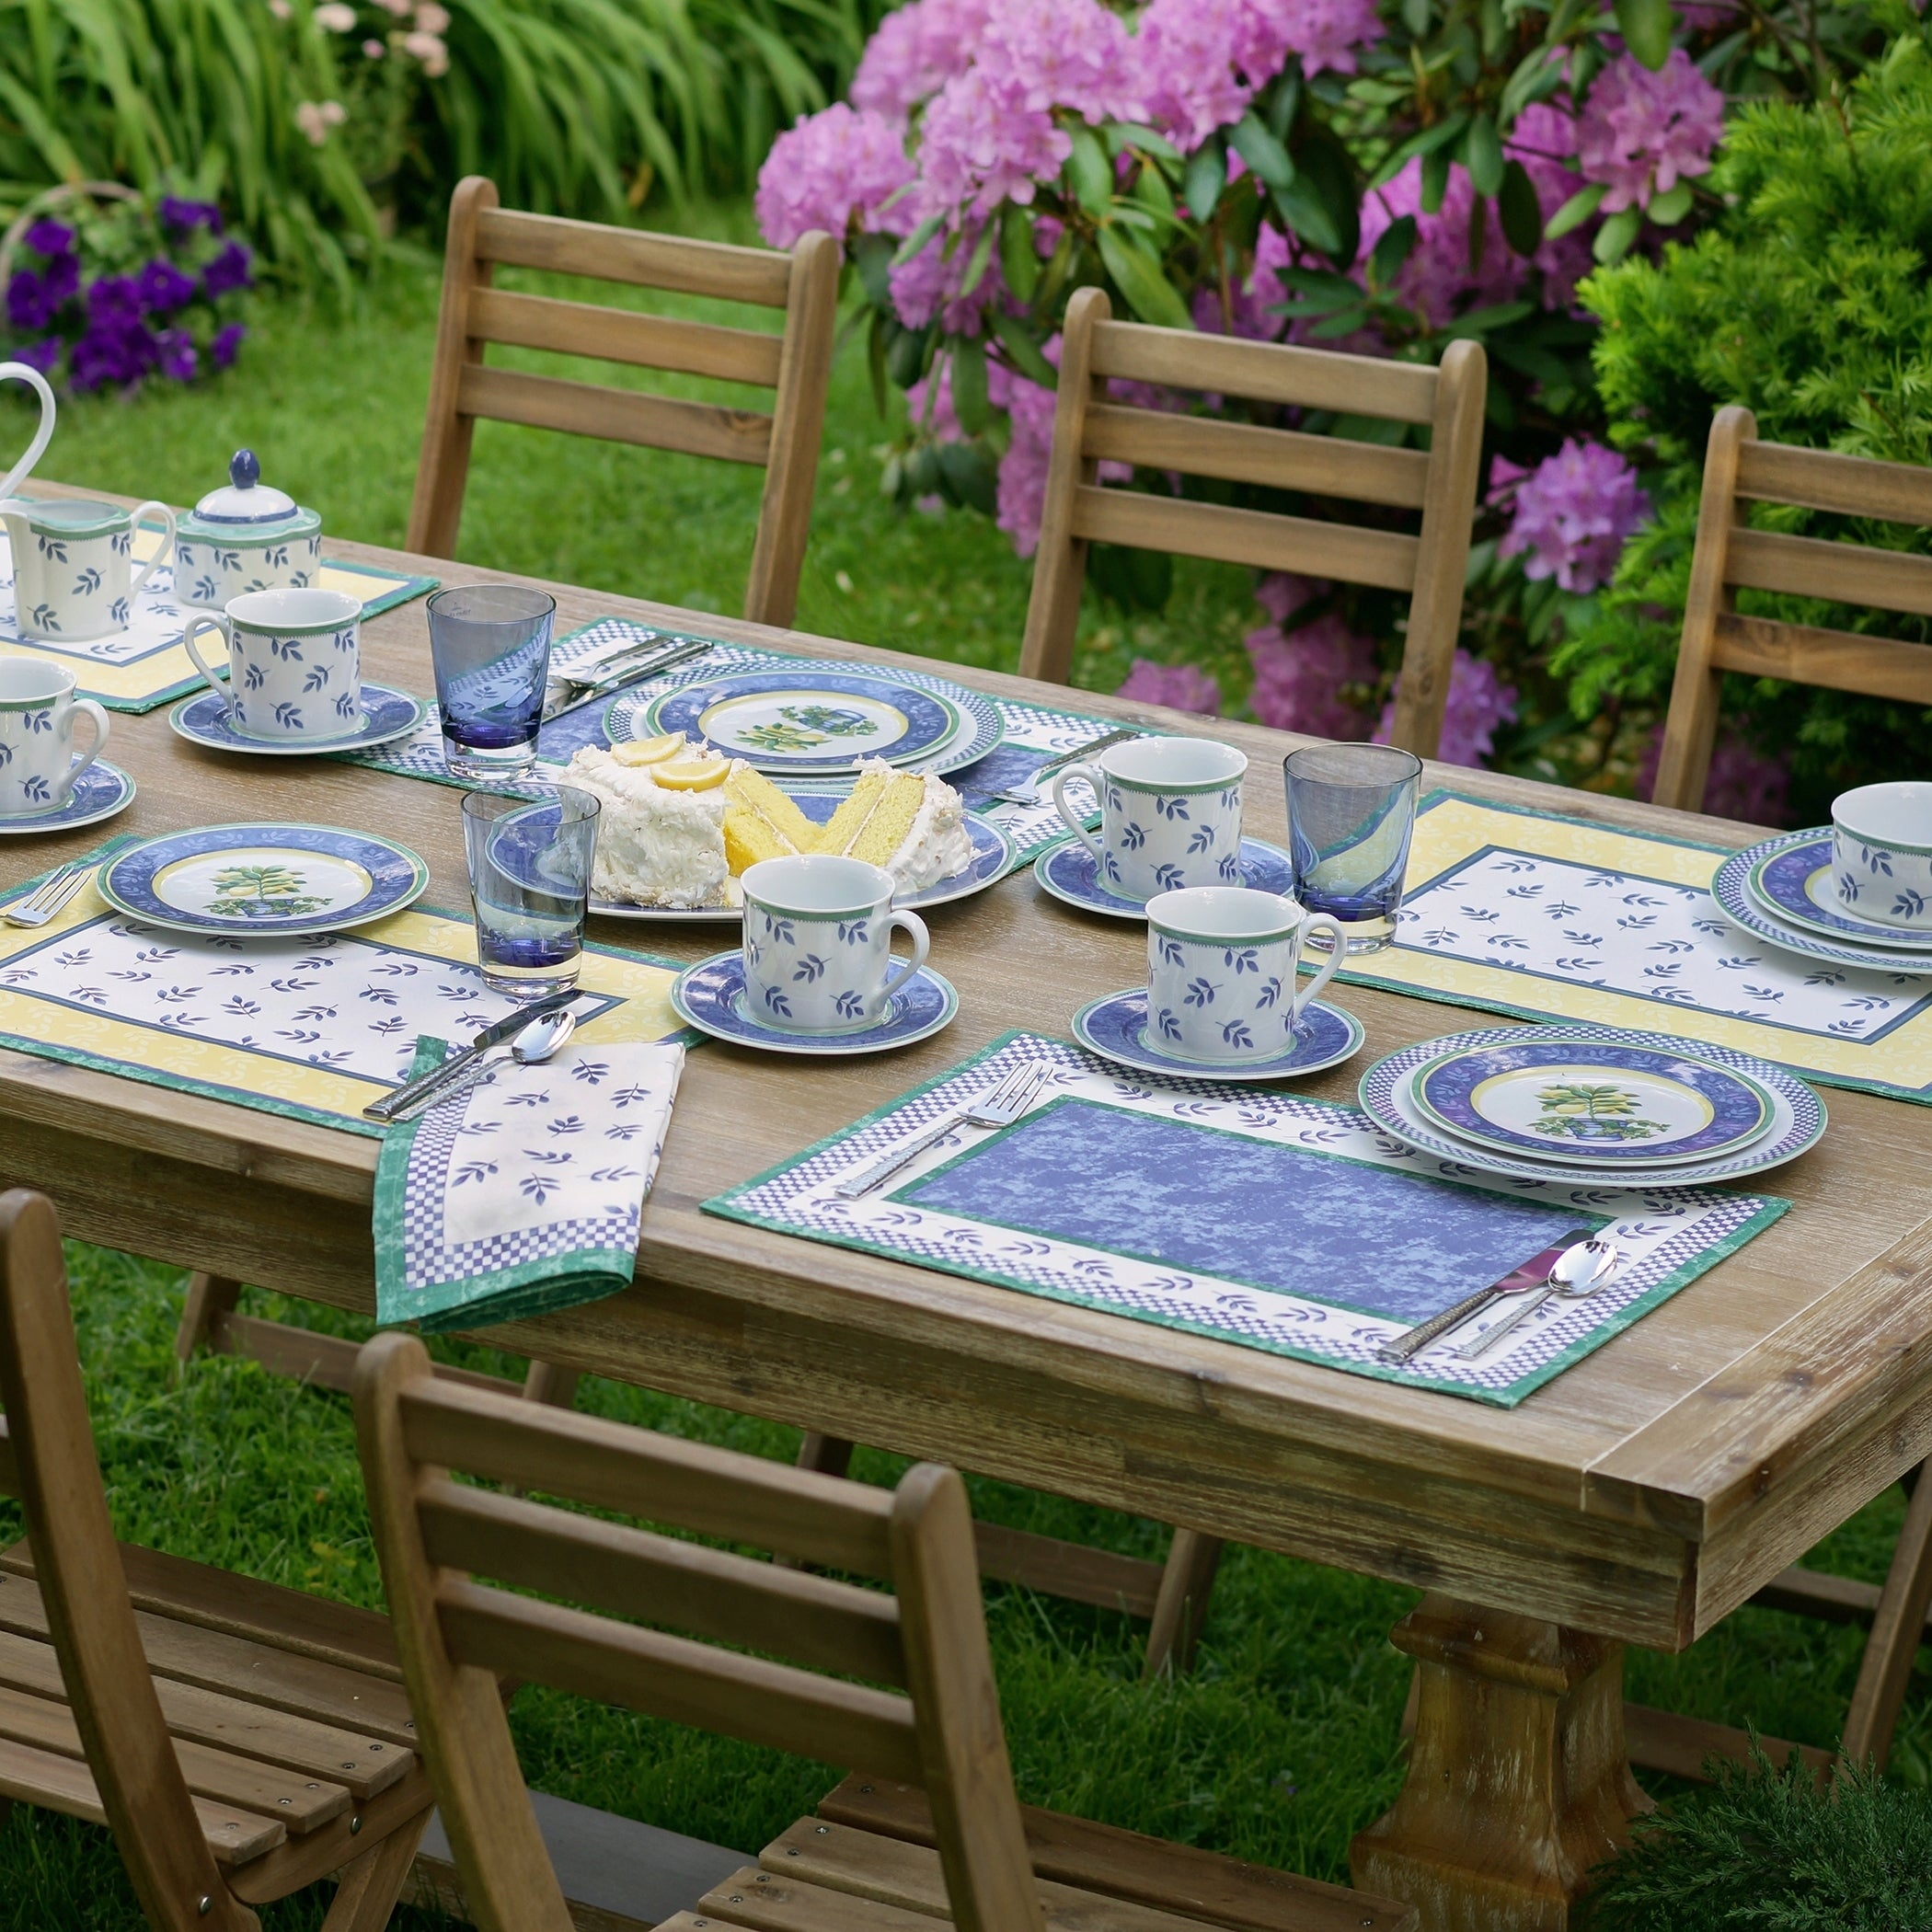 Villeroy And Boch Switch Set Of 4 Placemats 14 W X 20 L Overstock 20891235